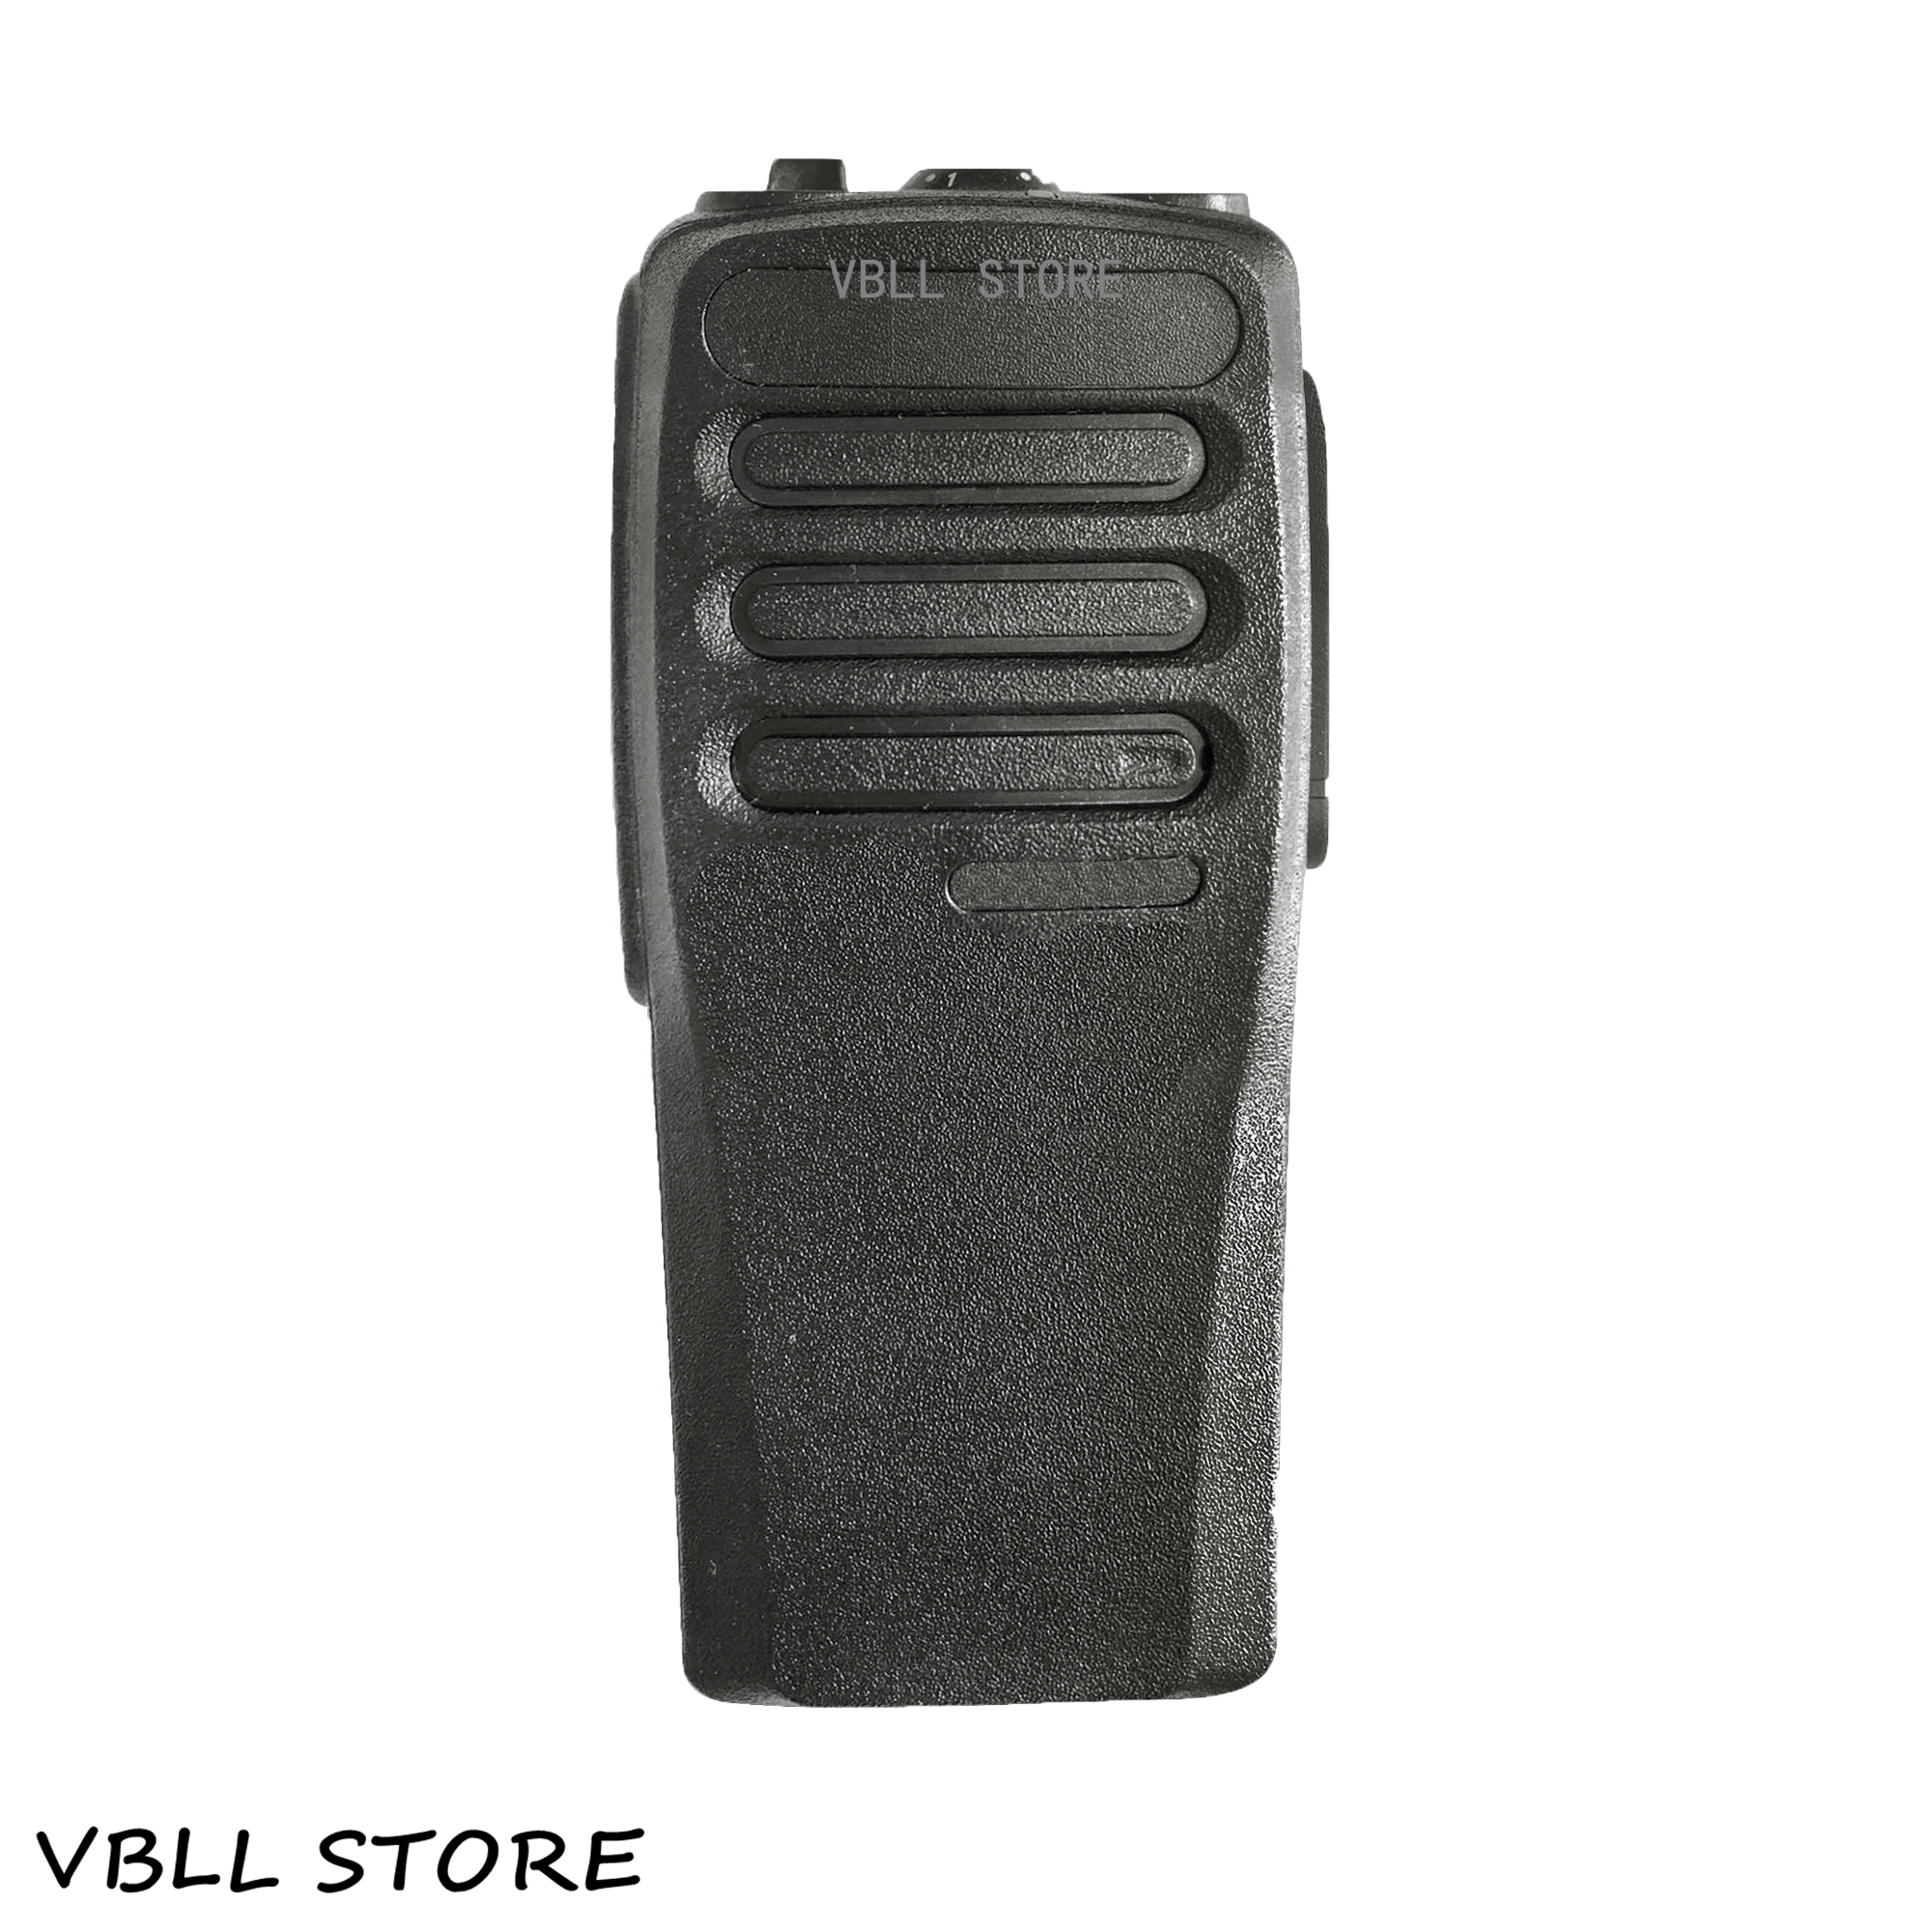 PMLN6345 Black Front Housing Case Cover For Motorola CP200D DEP-450 DEP450 Portable Two Way Radio Walkie Talkie(China)